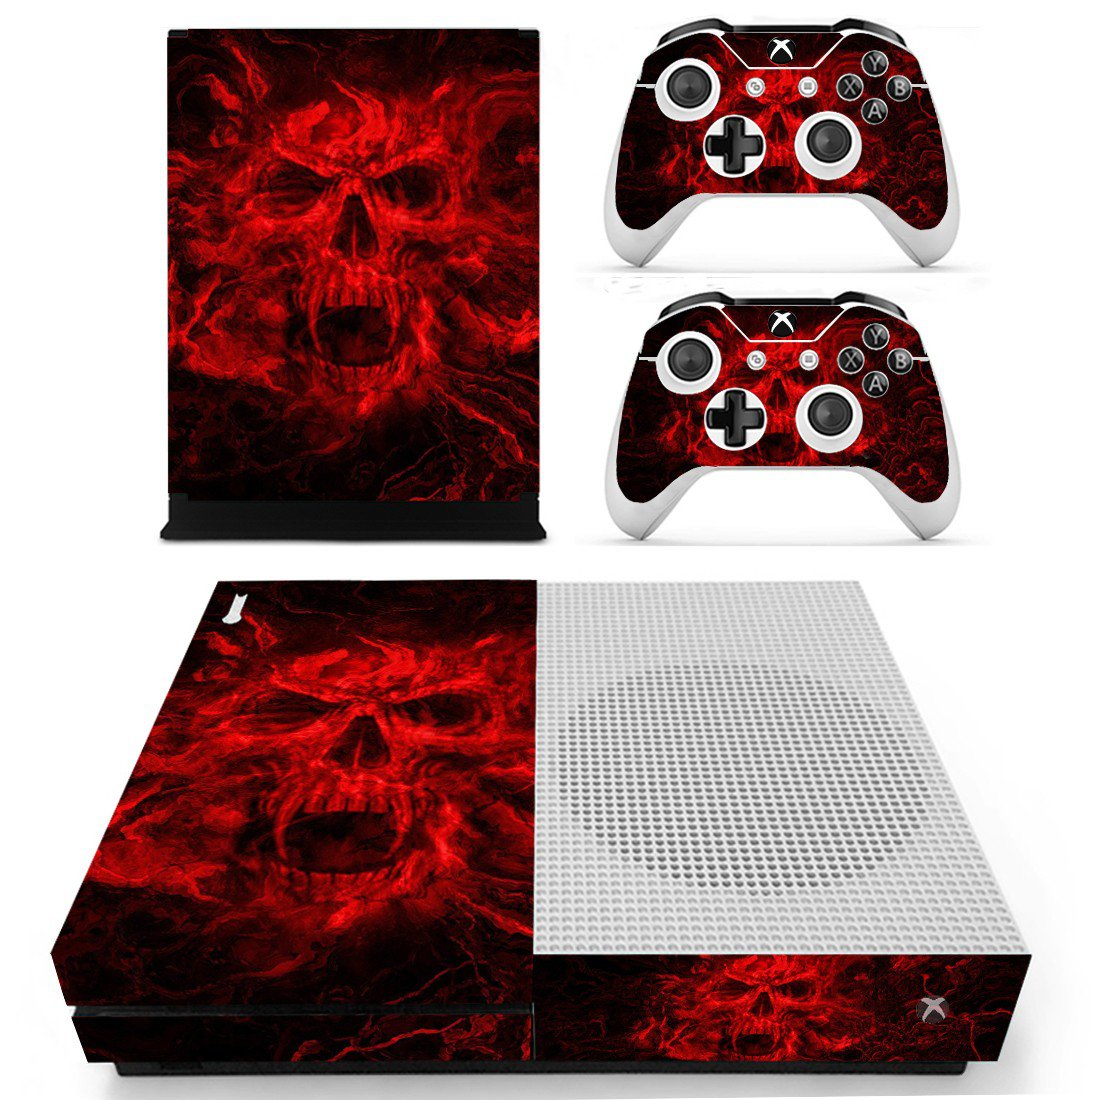 Fire Skull skin decal for Xbox one S console and controllers